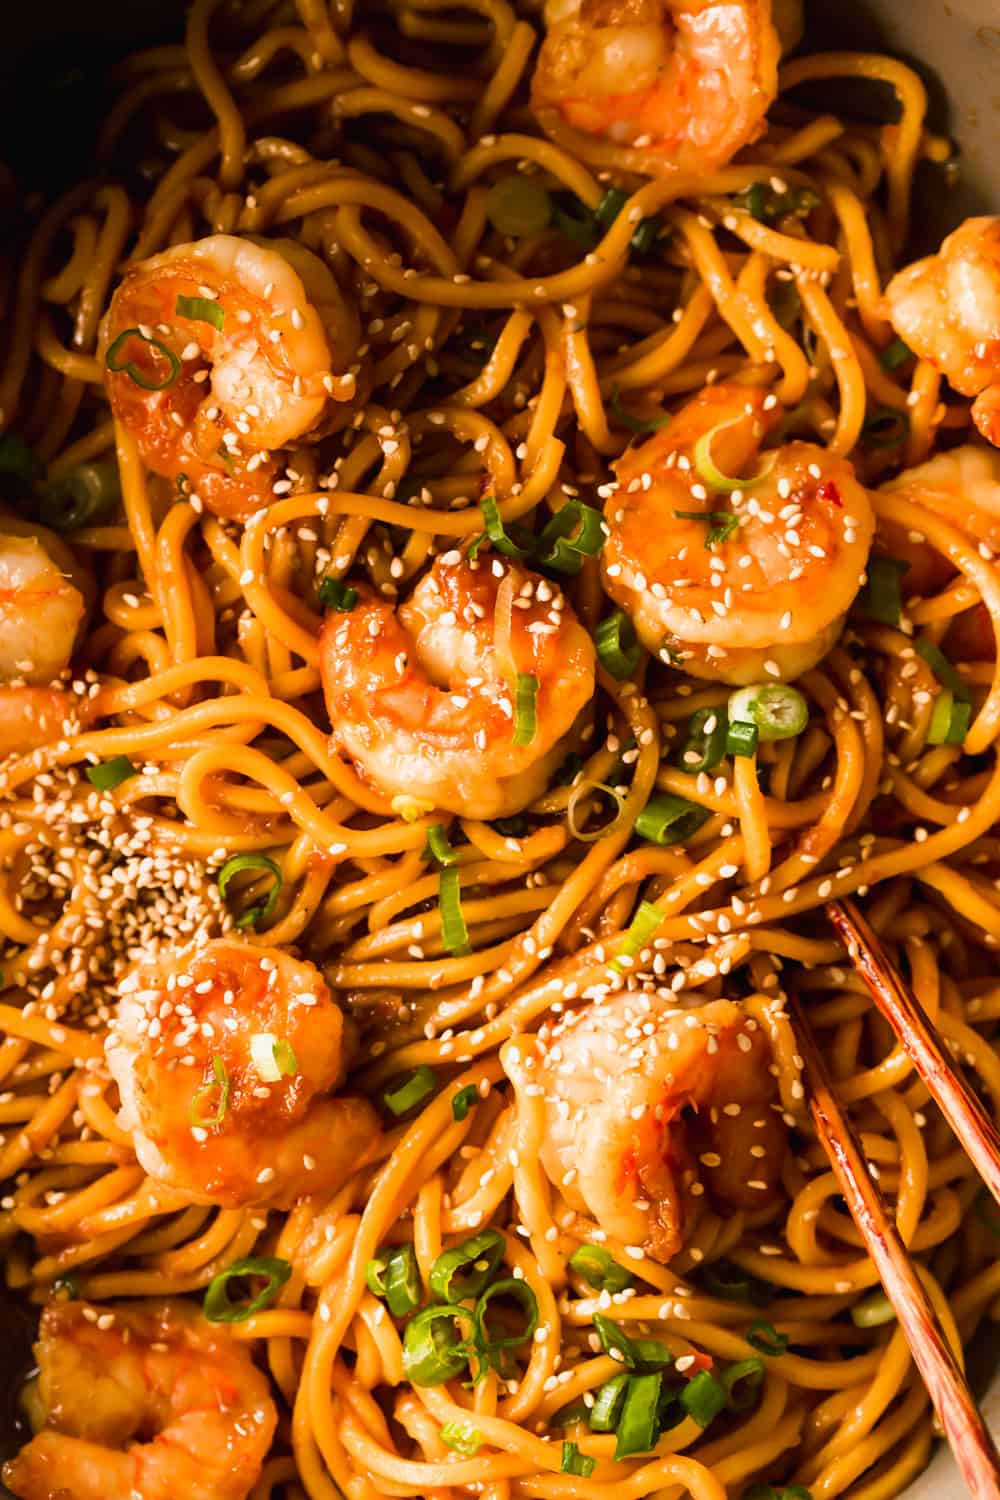 Closeup of noodles and shrimp with sesame seeds on top